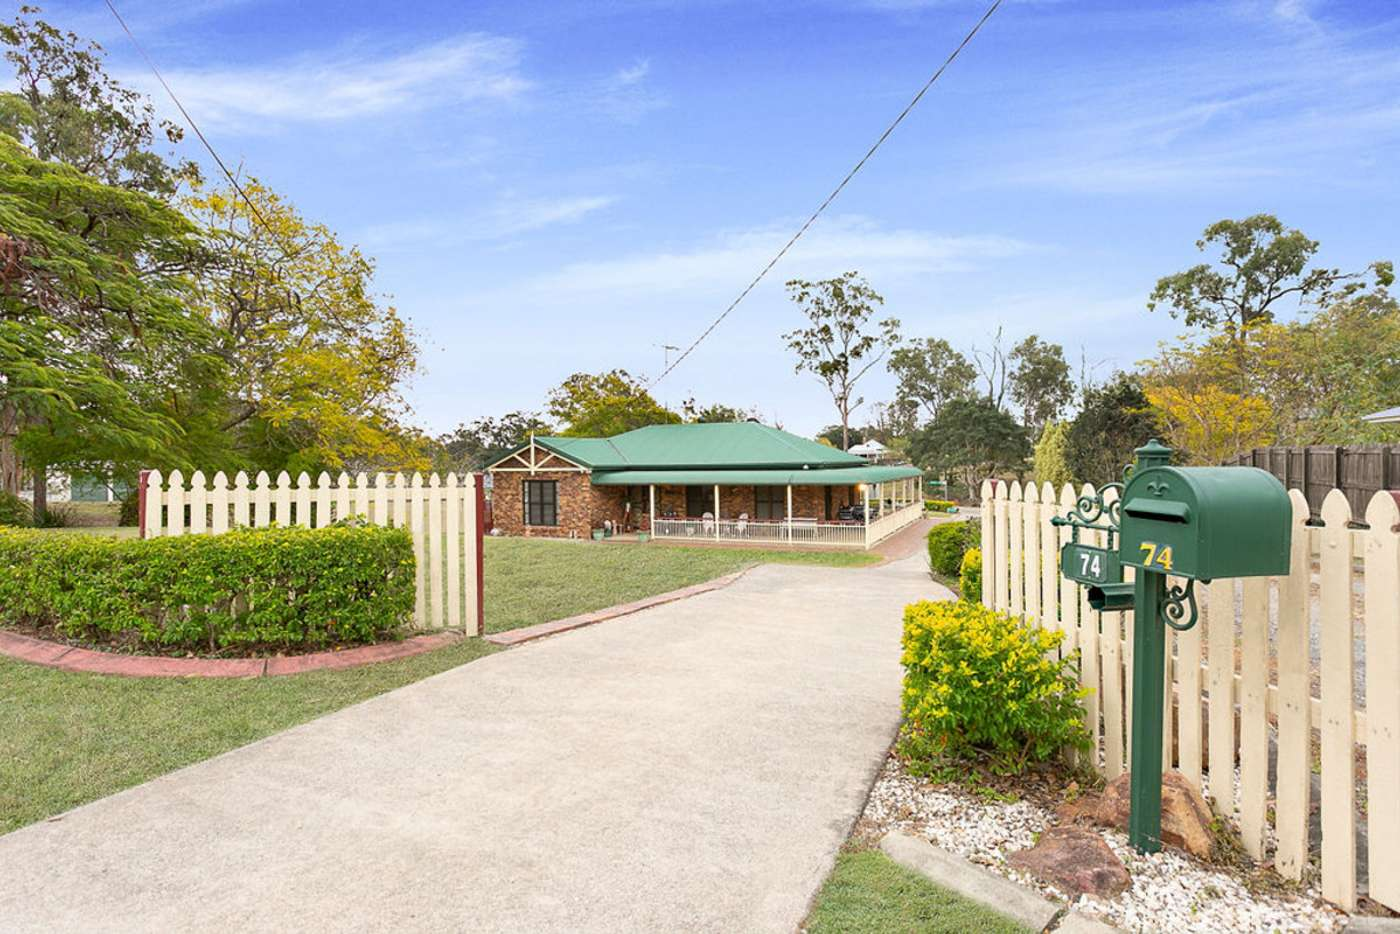 Main view of Homely house listing, 74 High Street, Blackstone QLD 4304